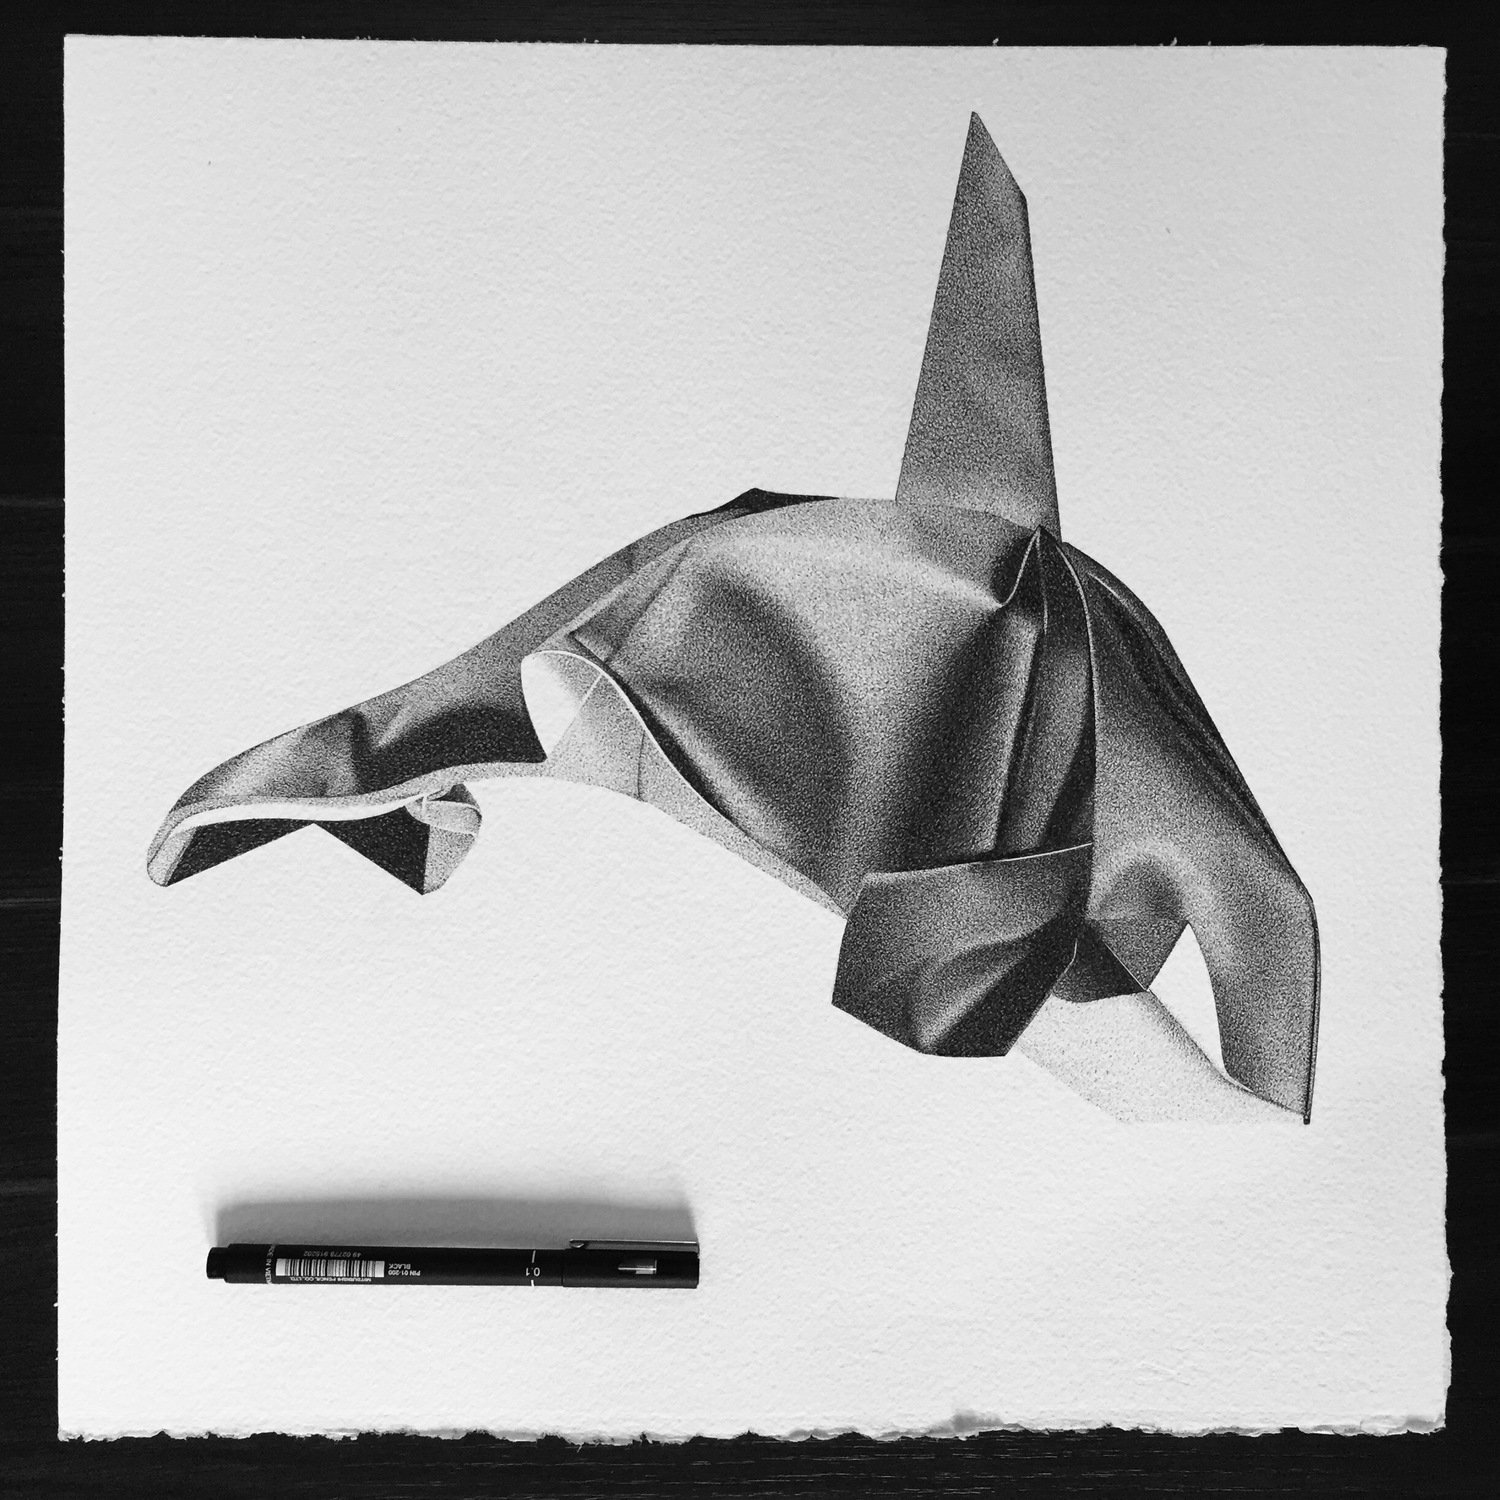 15-Killer-Whale-Origami-Alessandro-Paglia-Photo-Like-Black-and-White-Drawings-www-designstack-co